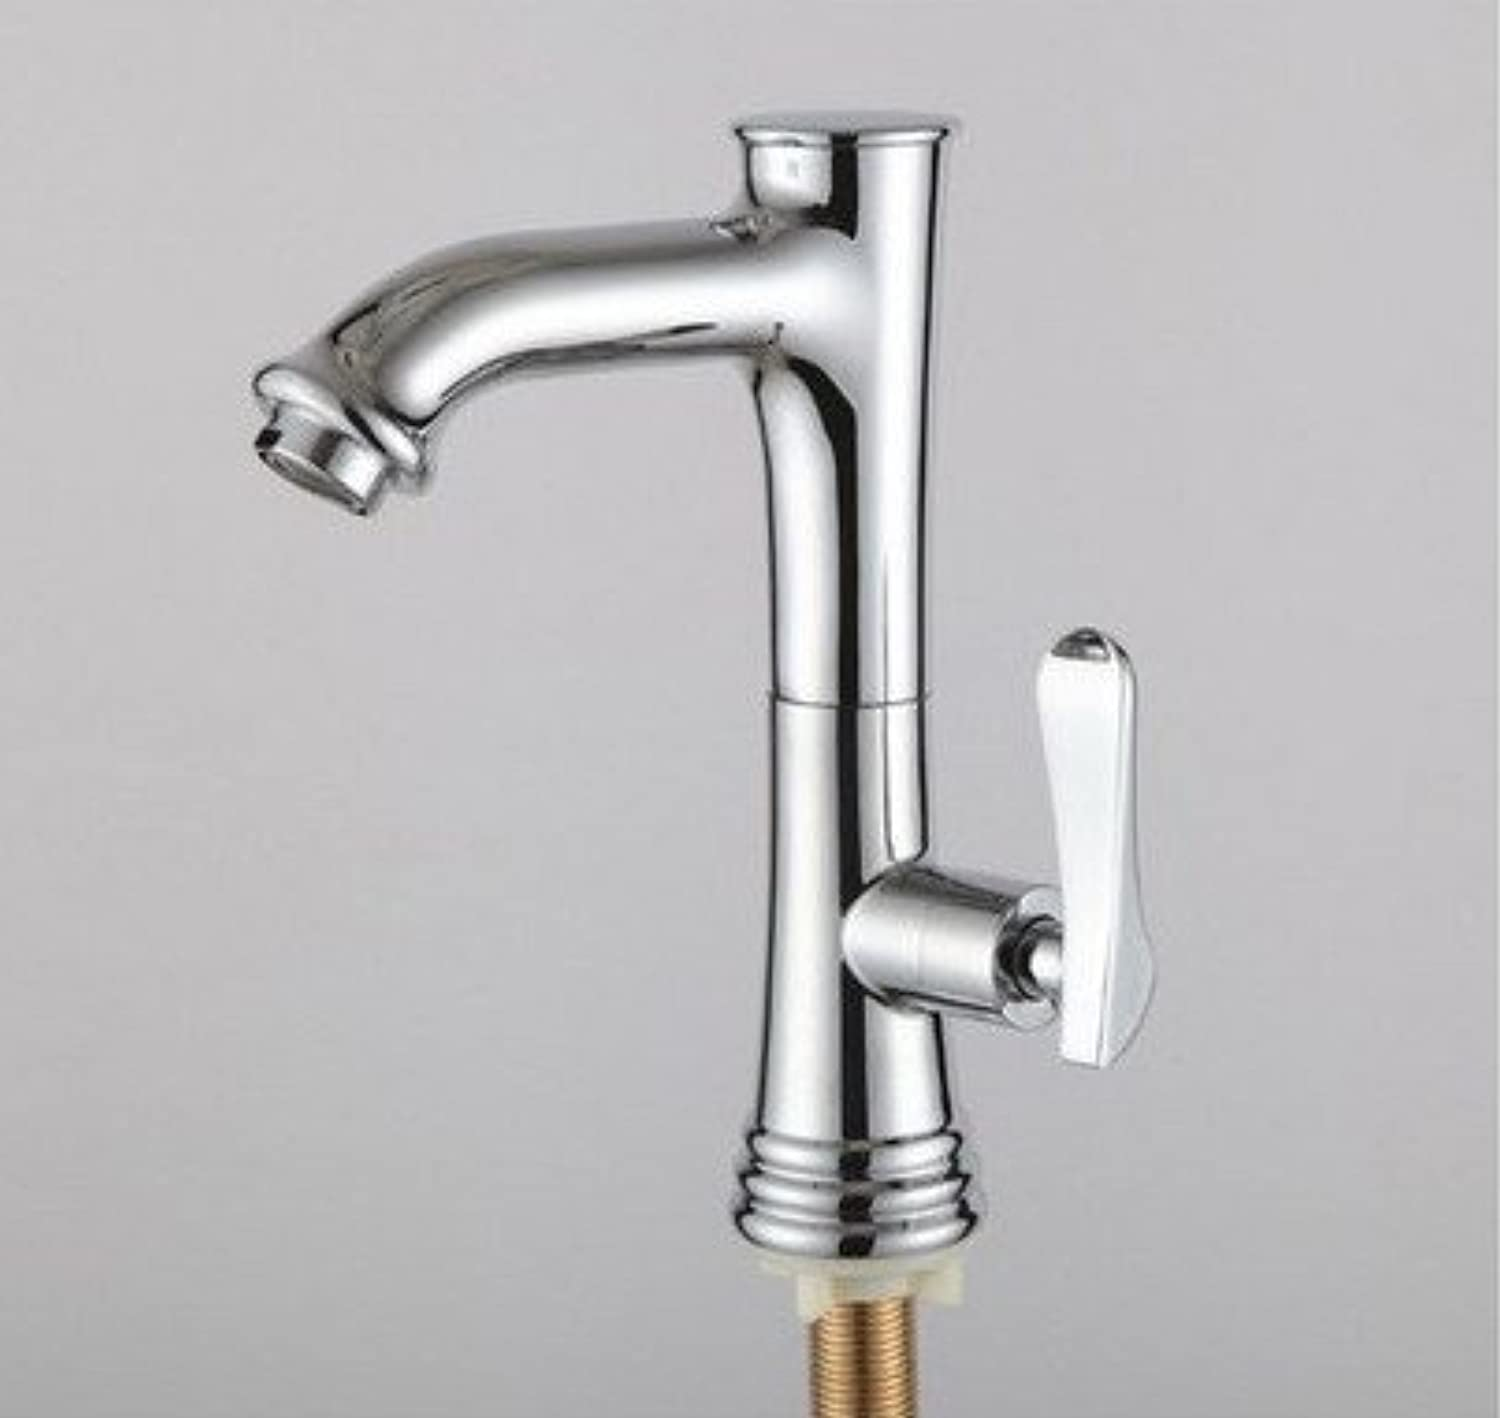 Retro Deluxe FaucetingTall Bathroom Water Tap Faucet, Single Cold Water 360 Degree Swival